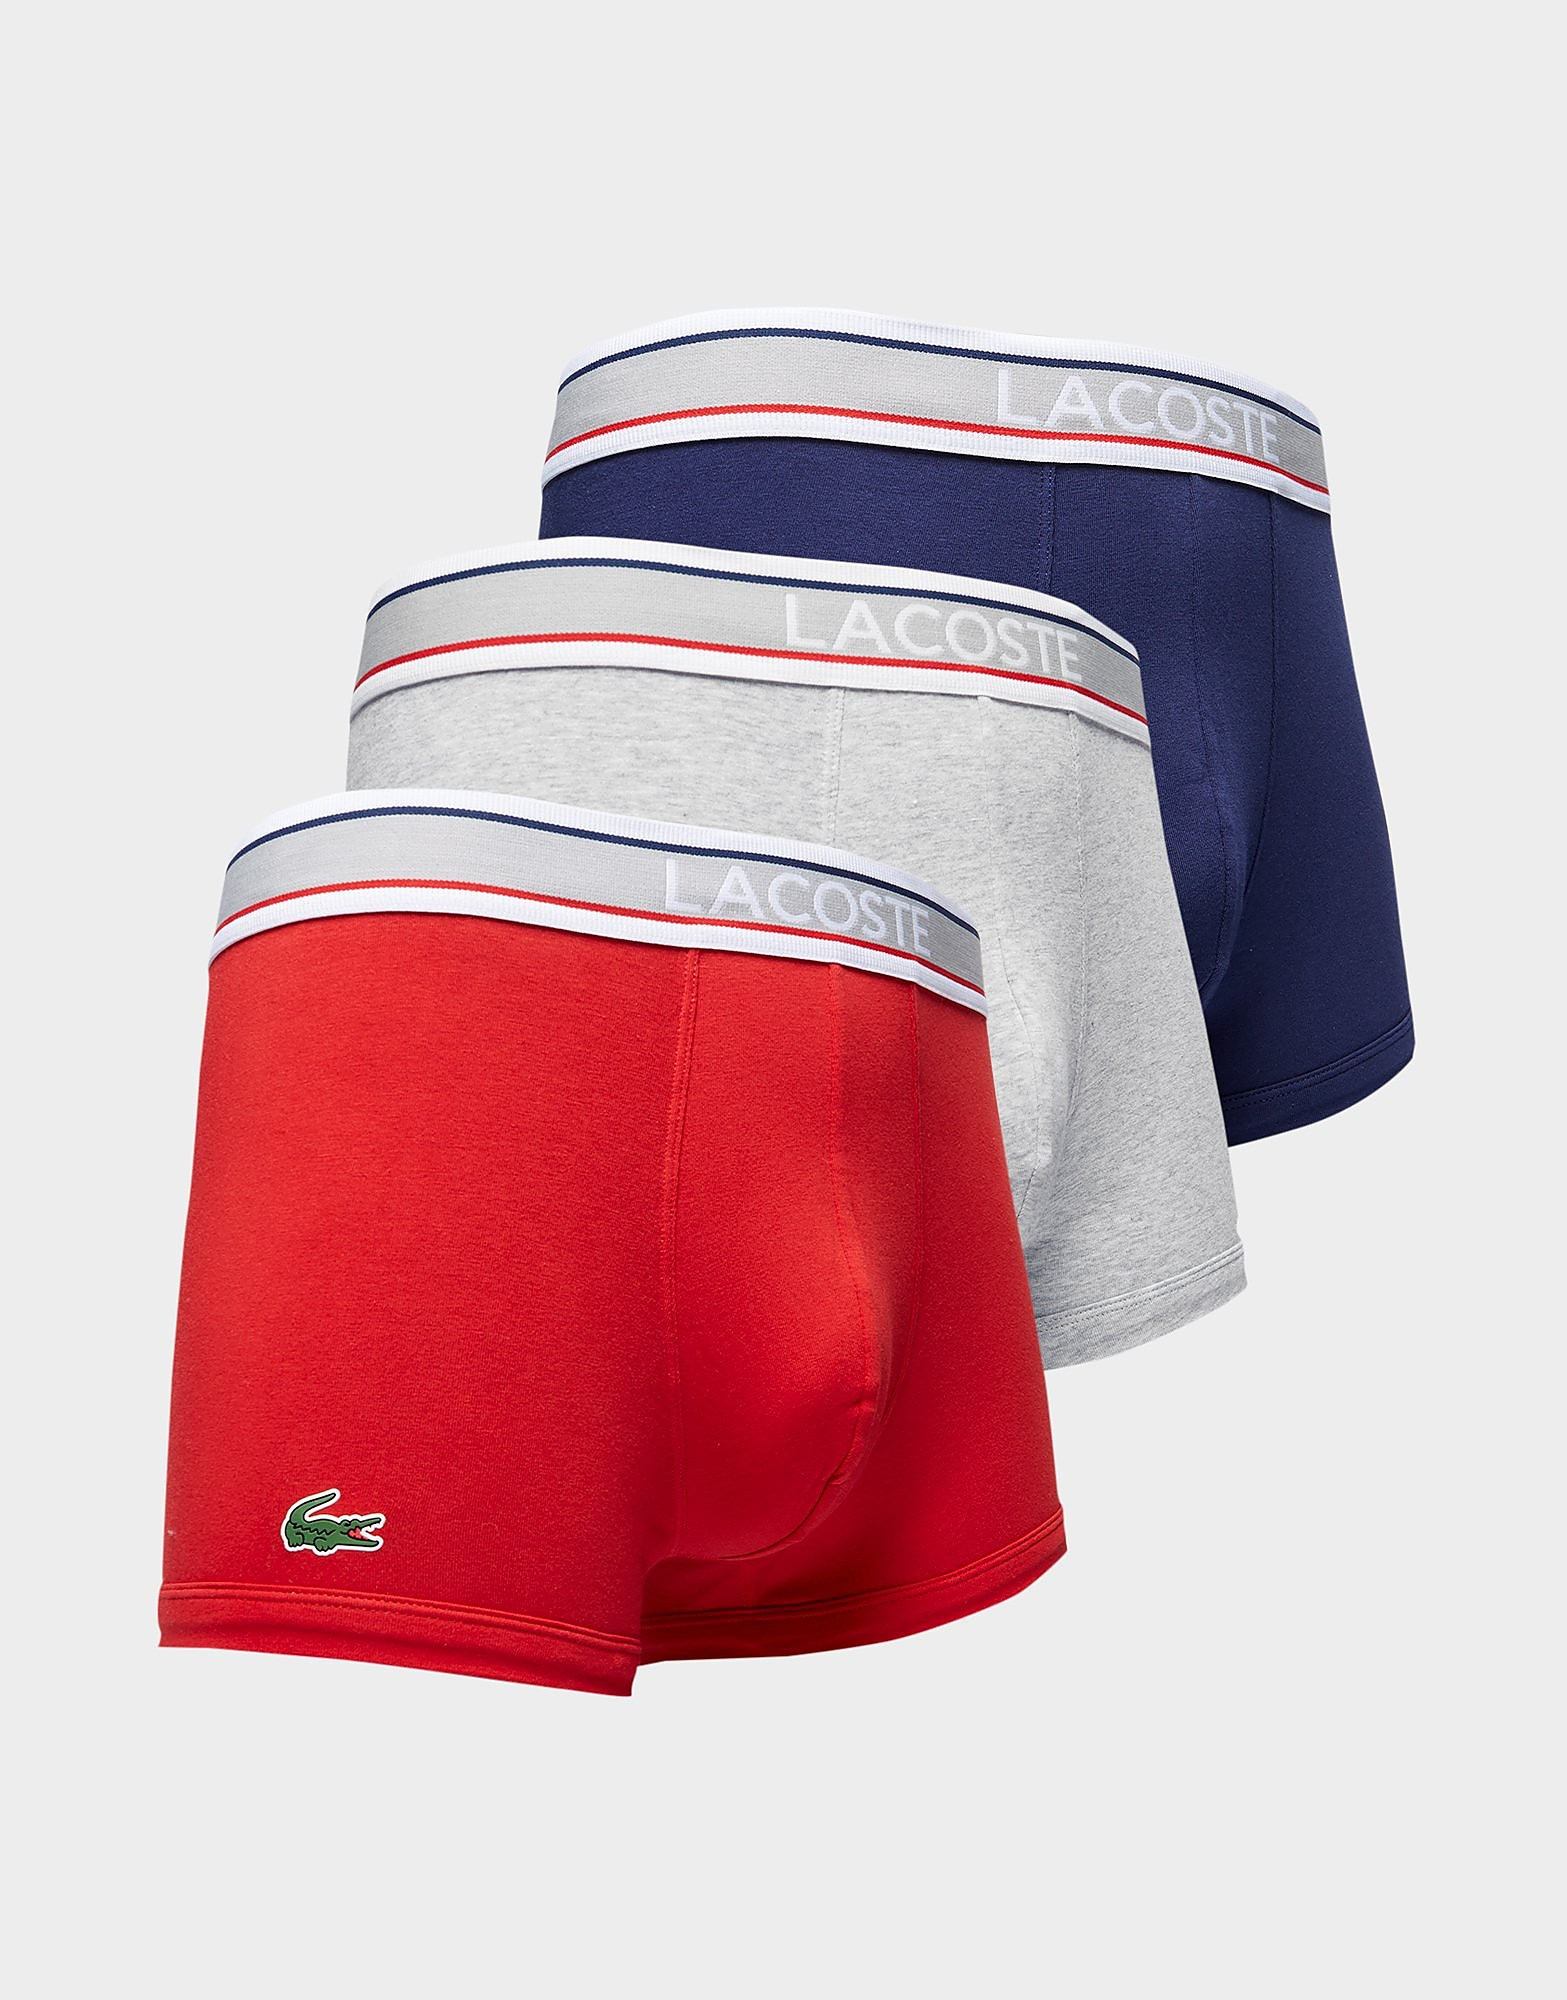 Lacoste 3 Pack Boxer